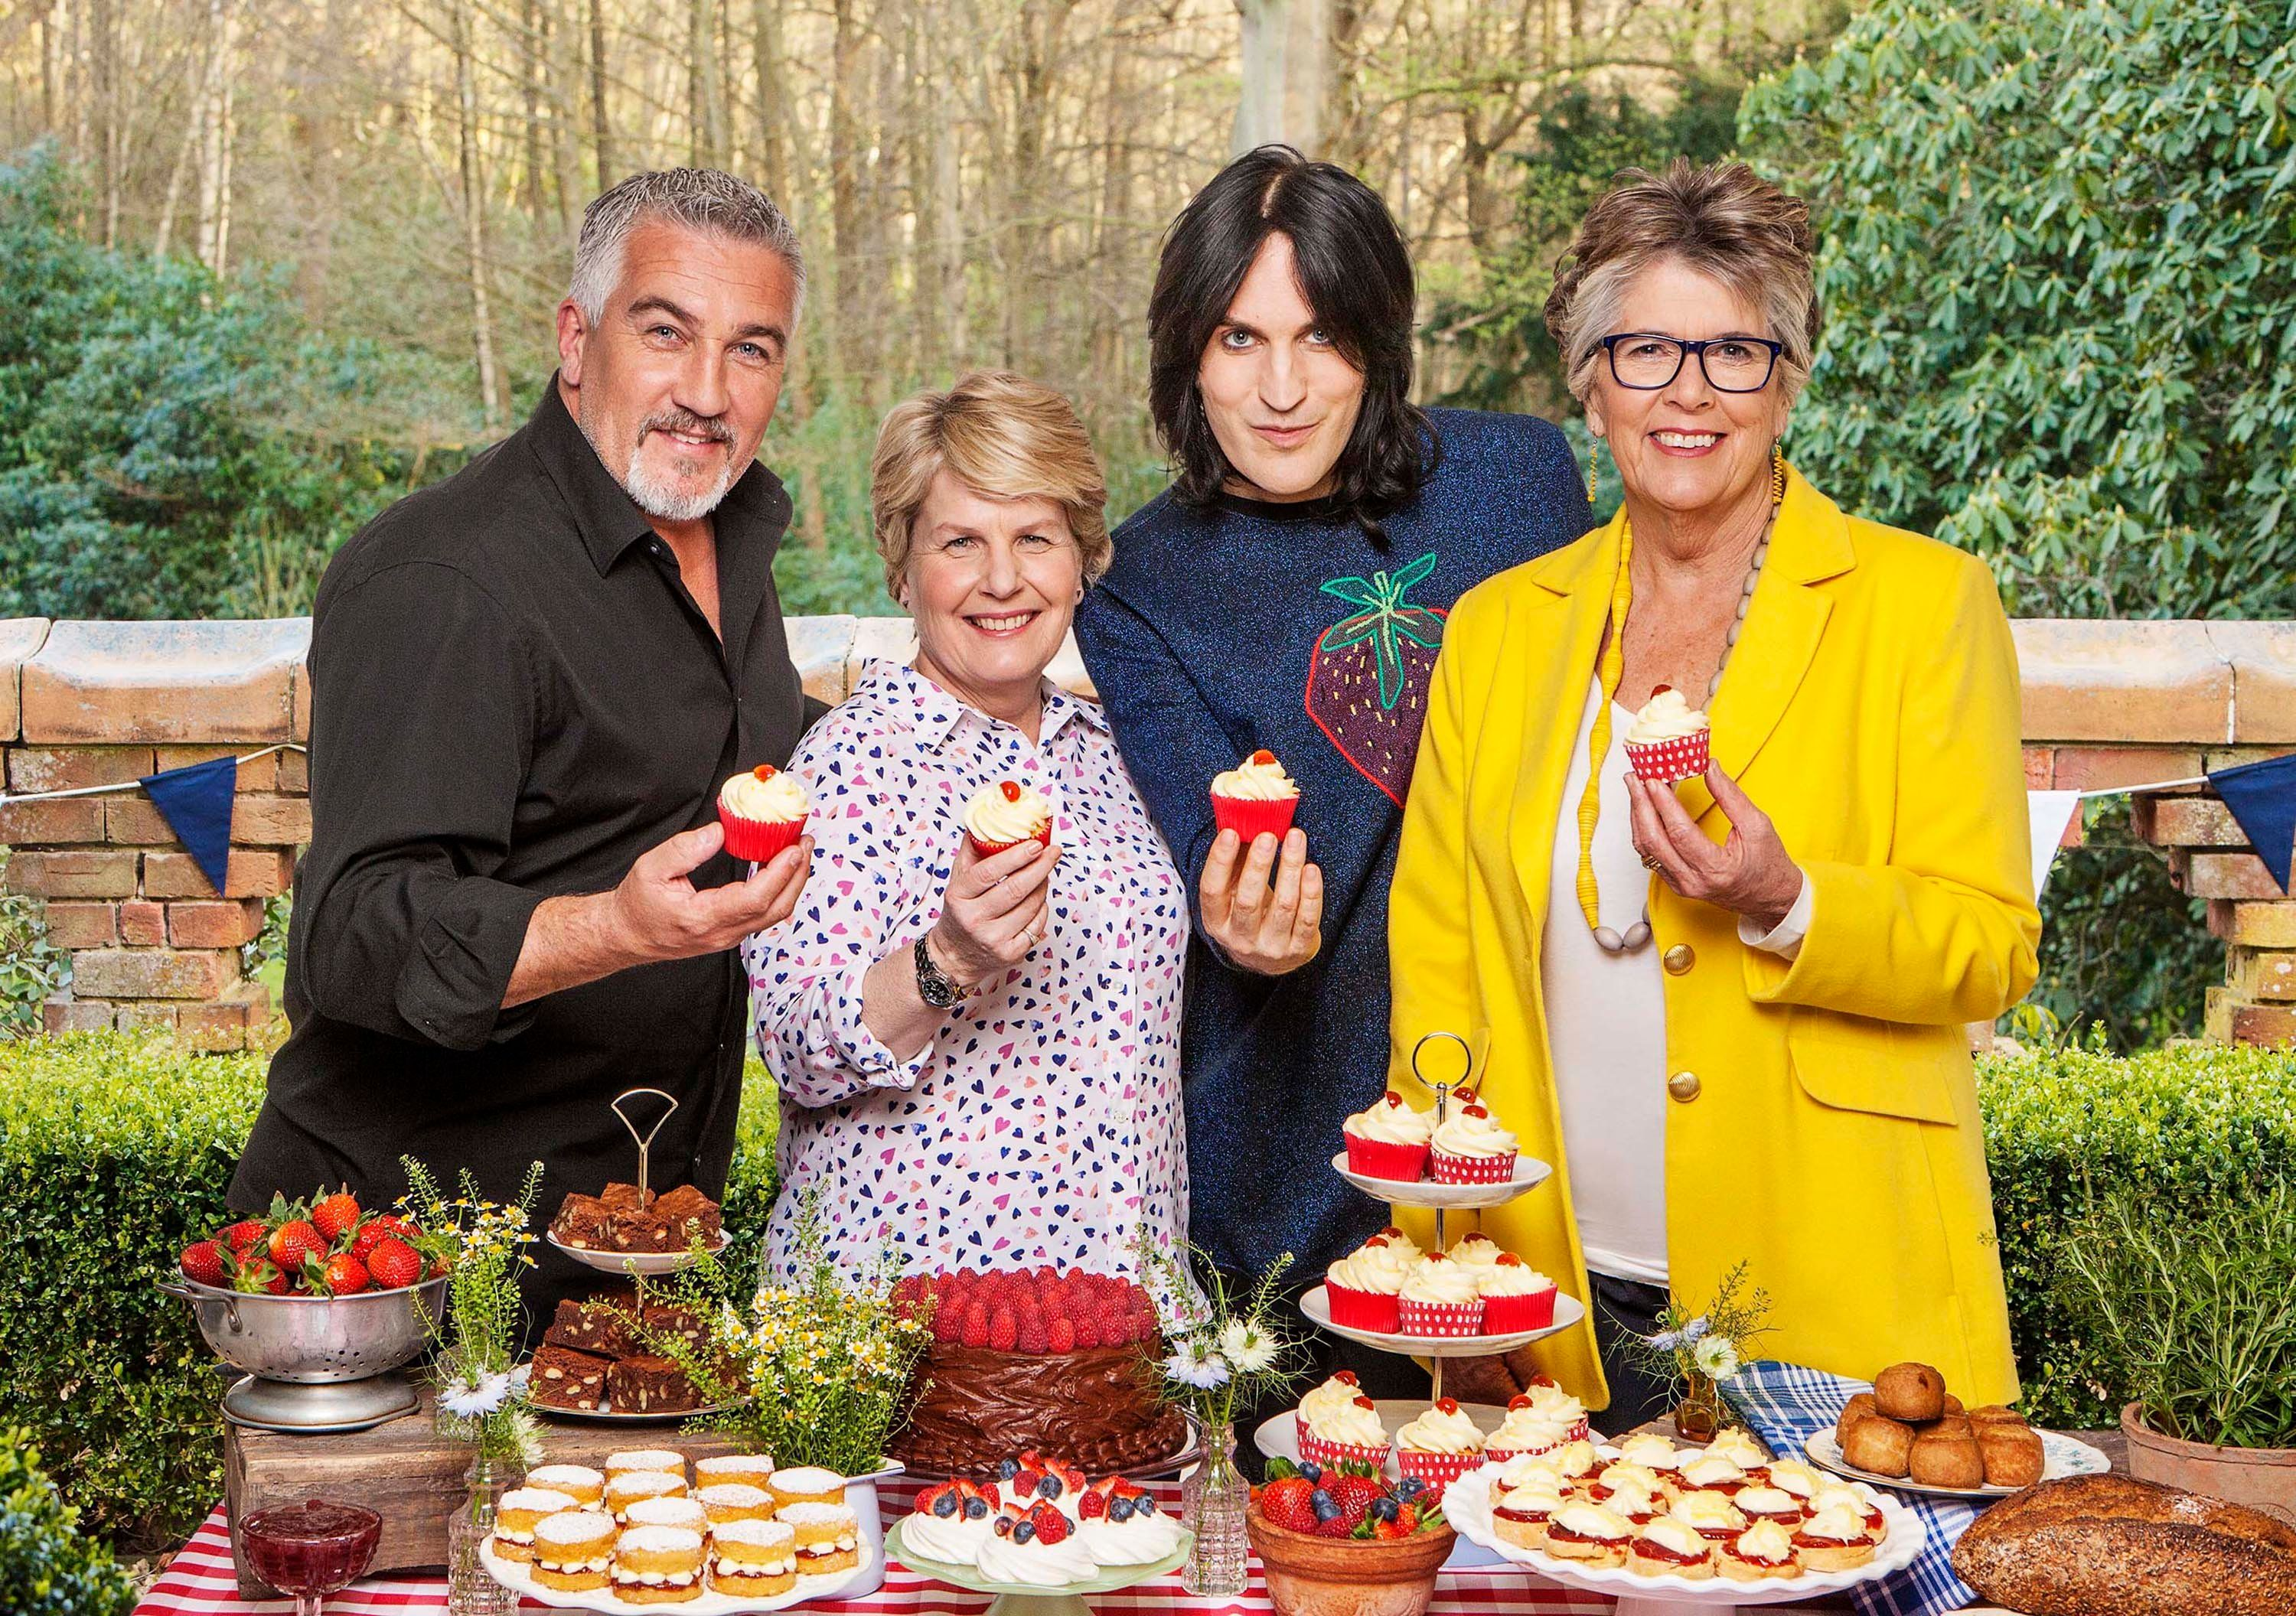 The 'Bake Off' Viewers' Verdict Is In... And There's Good And Bad